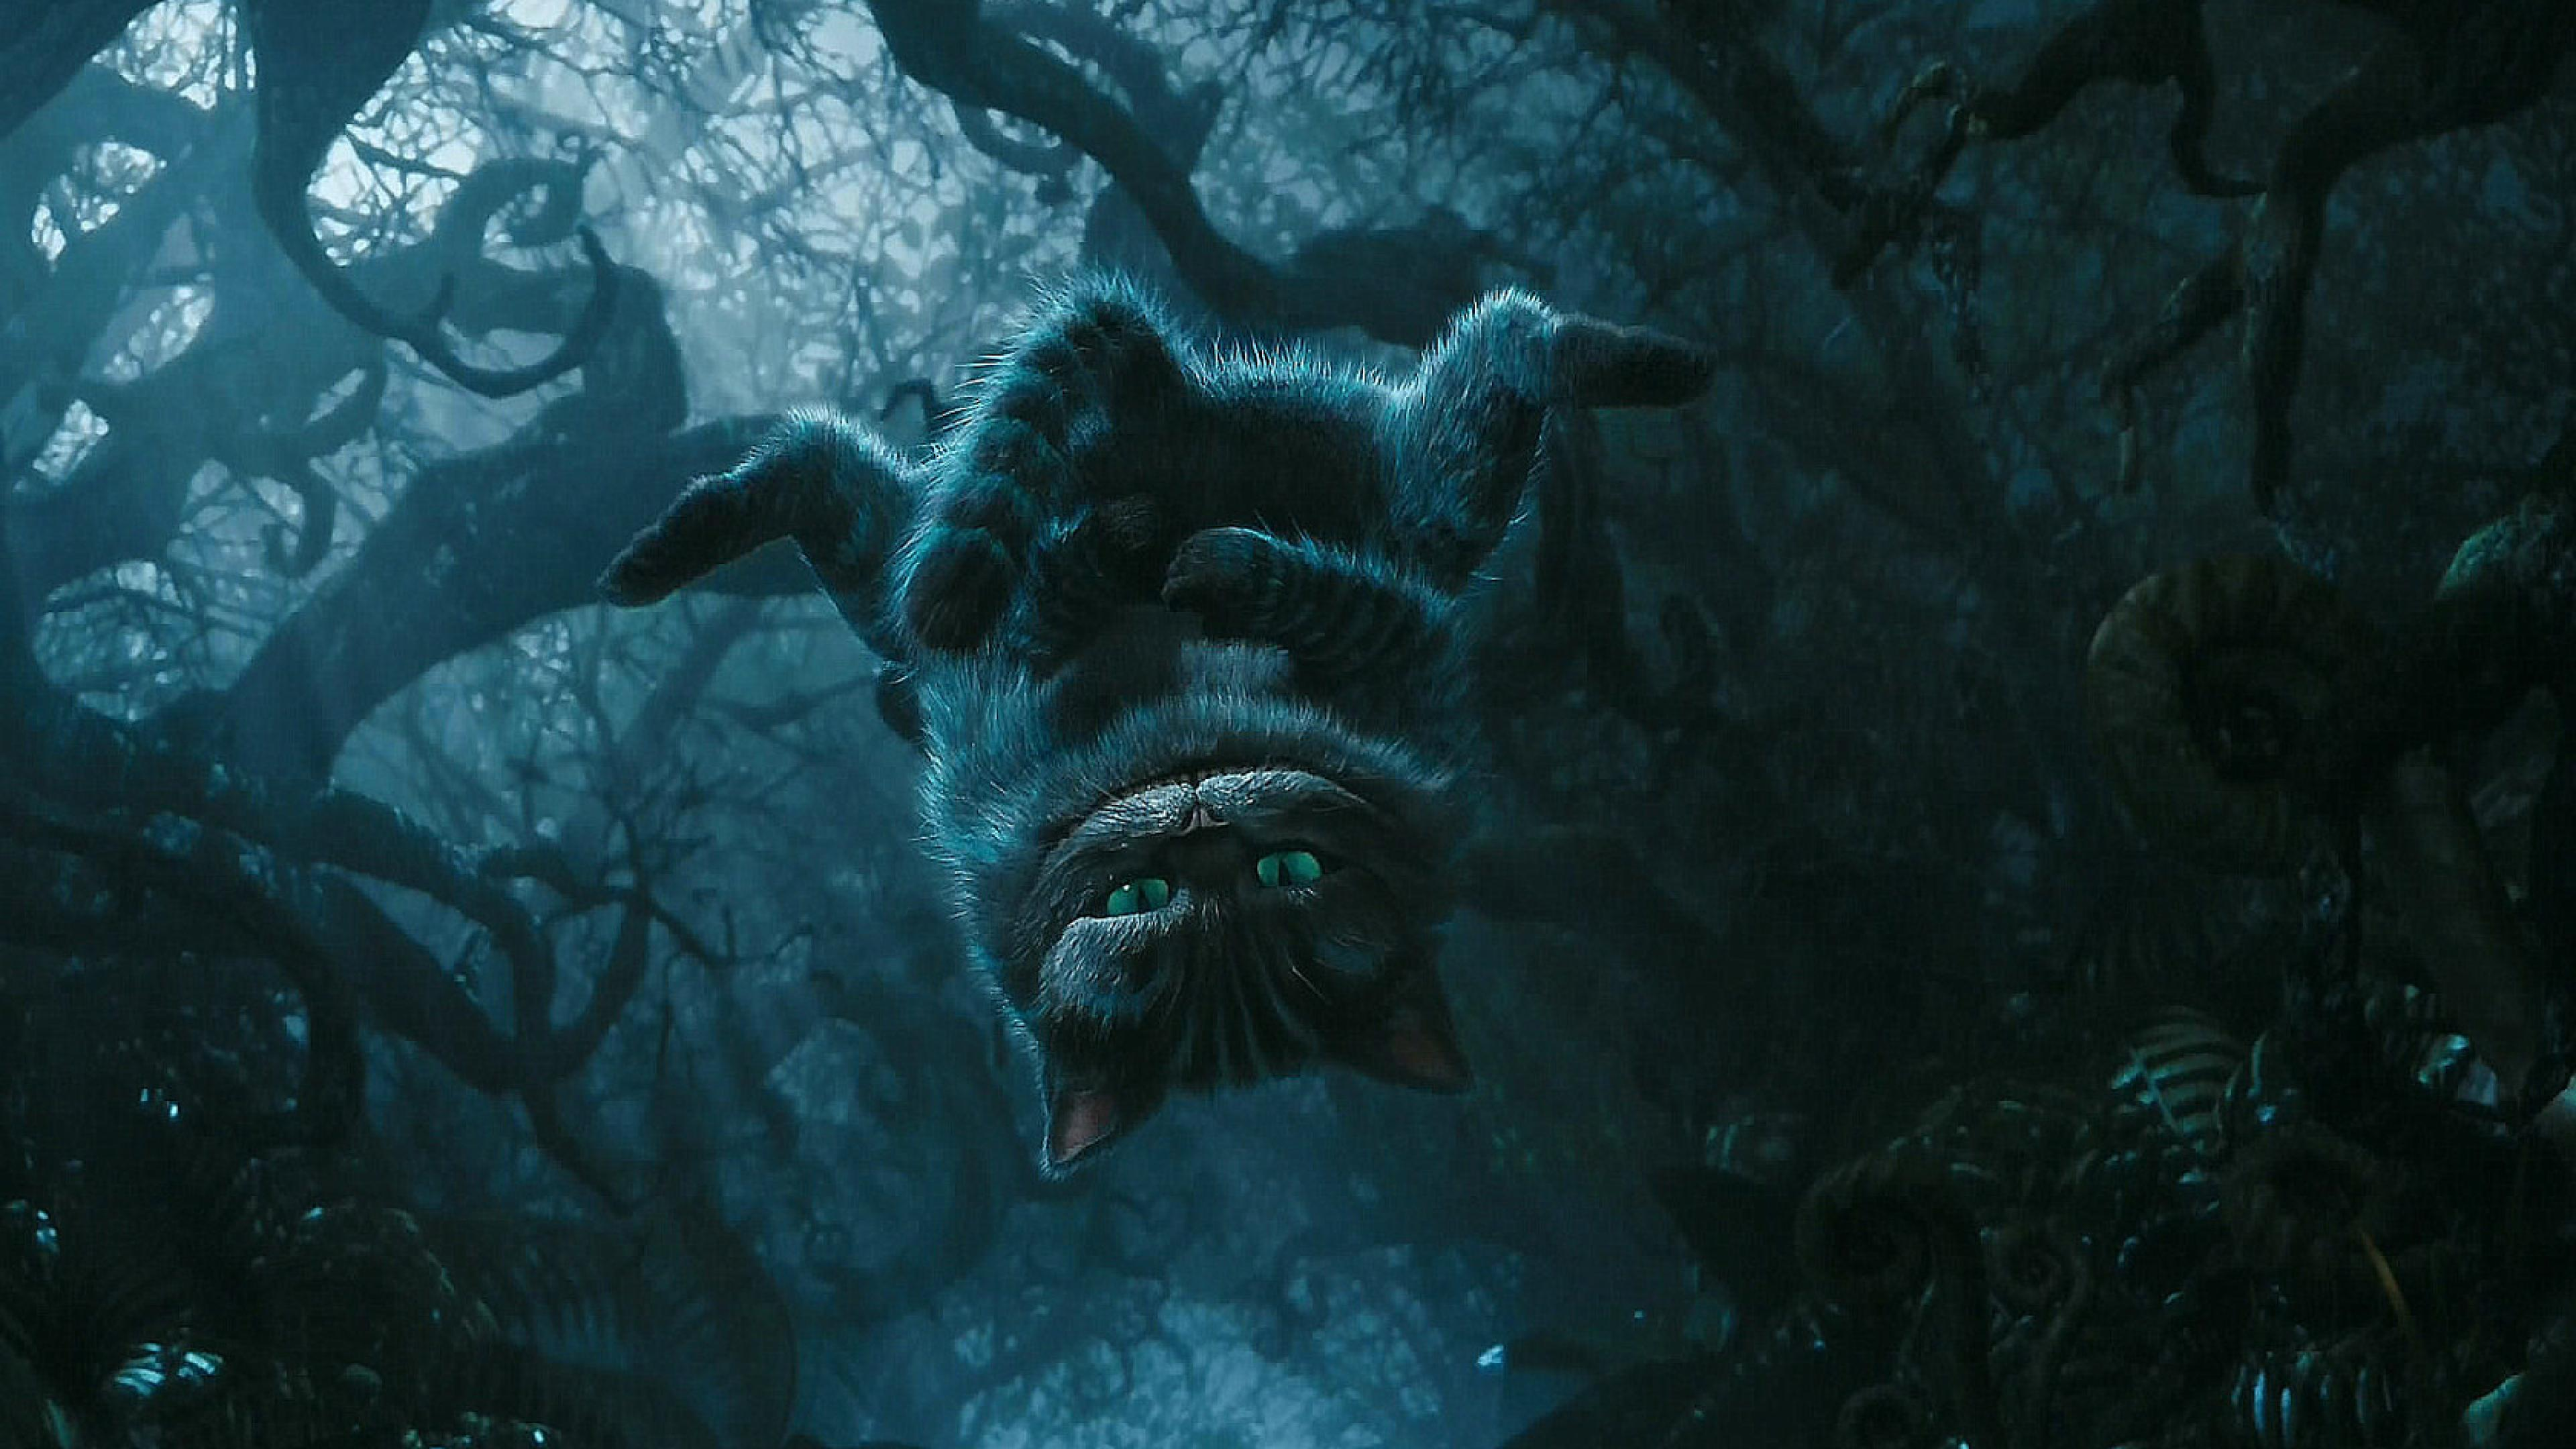 Cheshire Cat Wallpapers Download 3840x2160